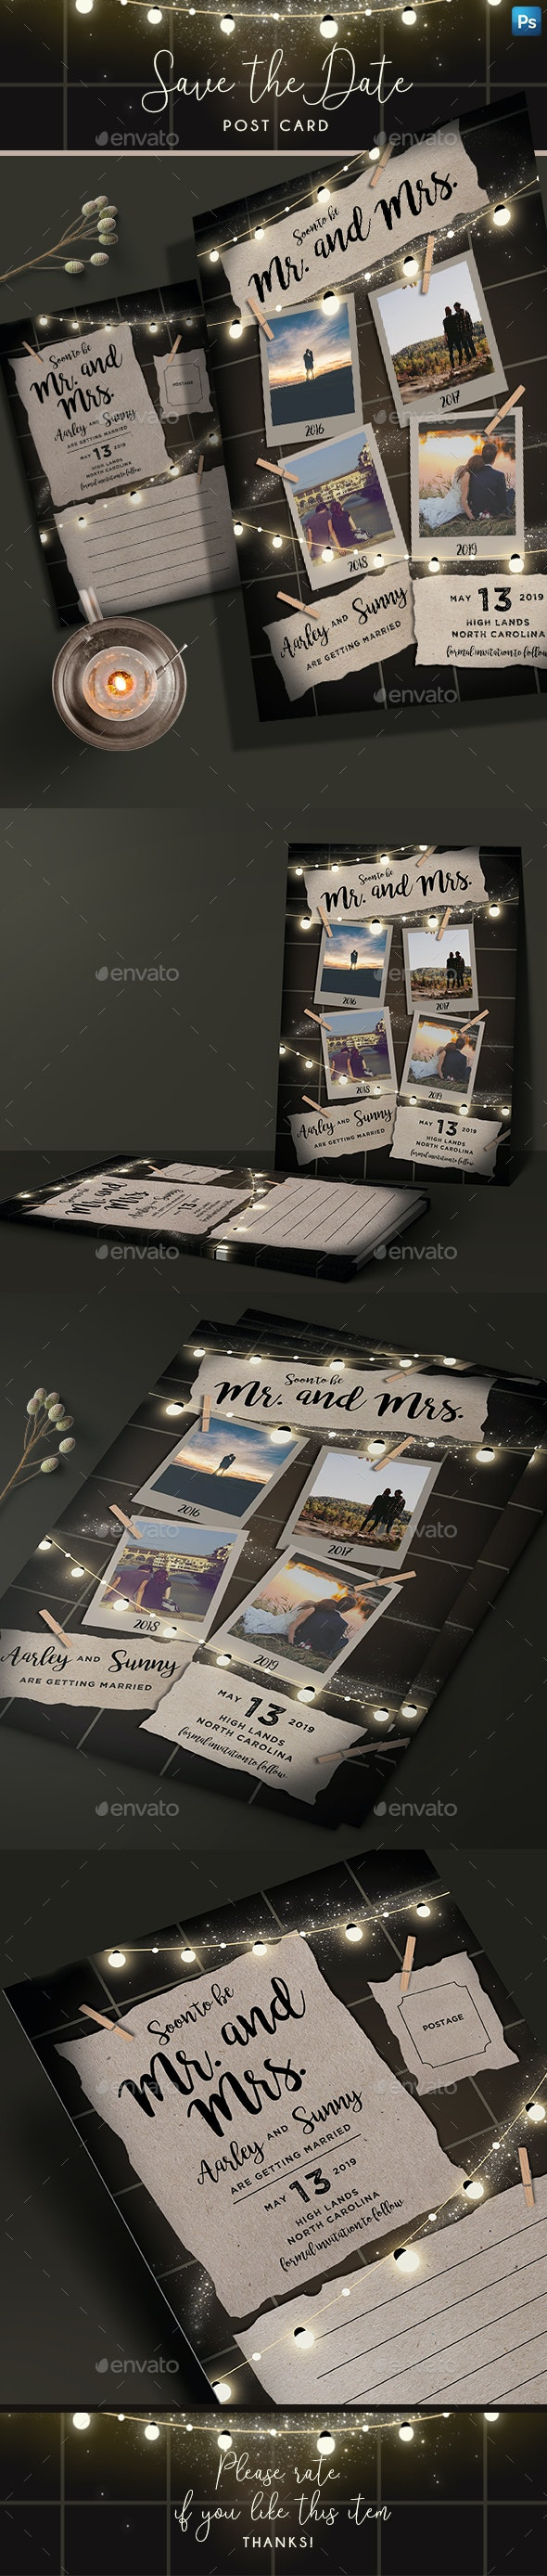 String Lights Save the Date Post Card - Weddings Cards & Invites